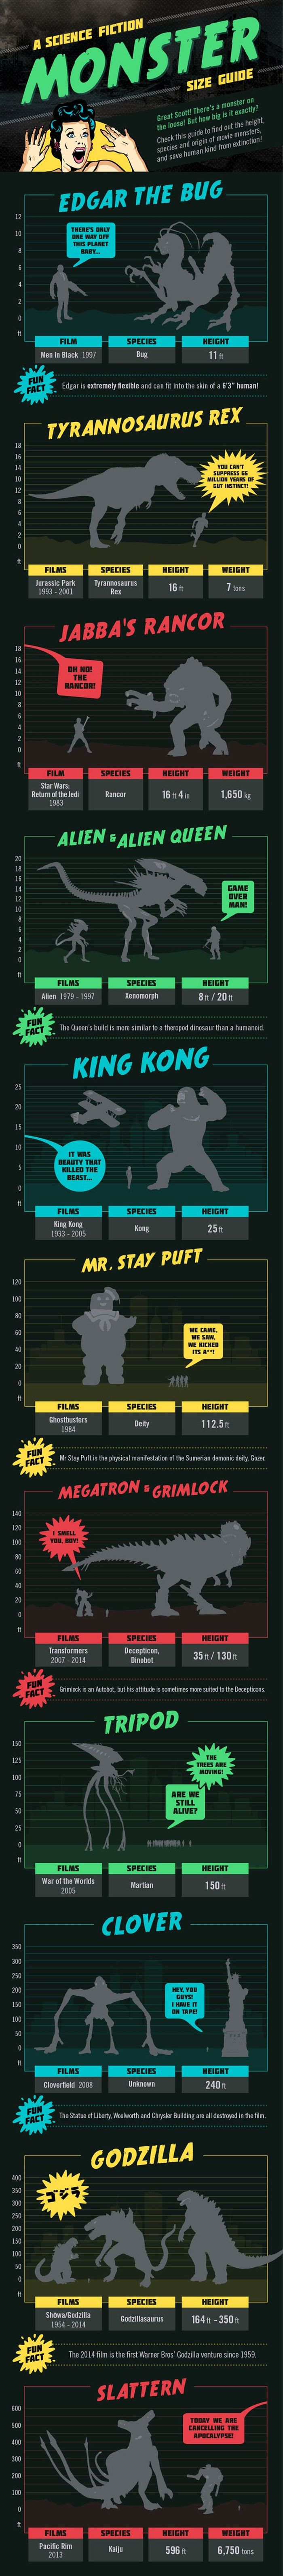 Everything You Need To Know About Movie Monsters (infographic)